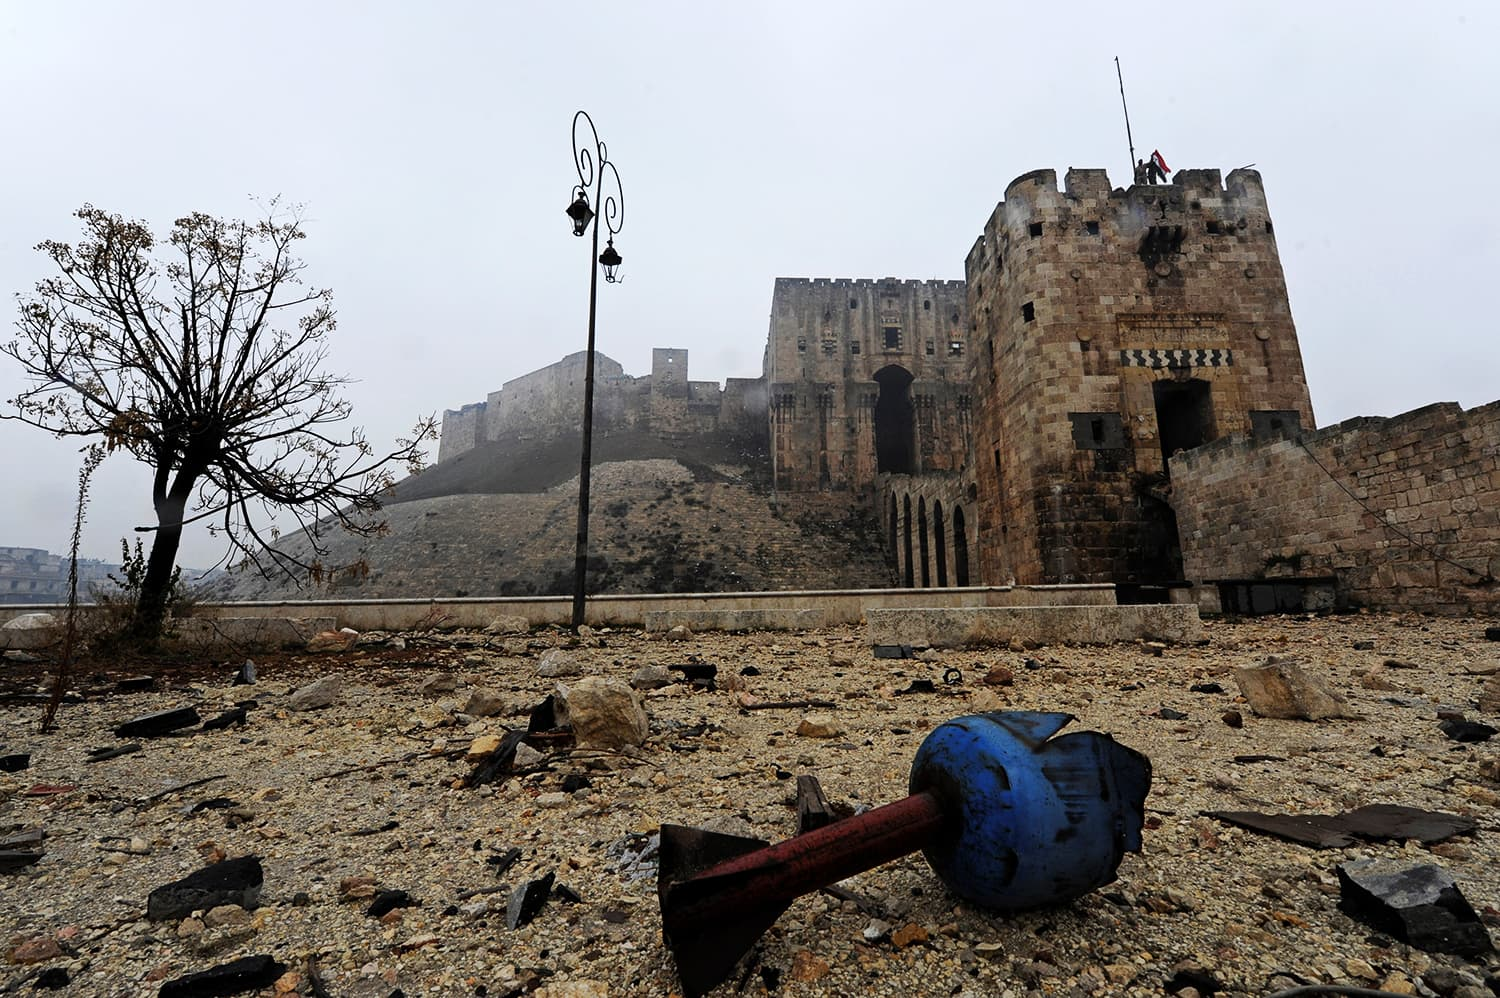 The remains of a shell are pictured outside Aleppo's historic citadel, during a media tour, Syria December 13, 2016. ─ Reuters